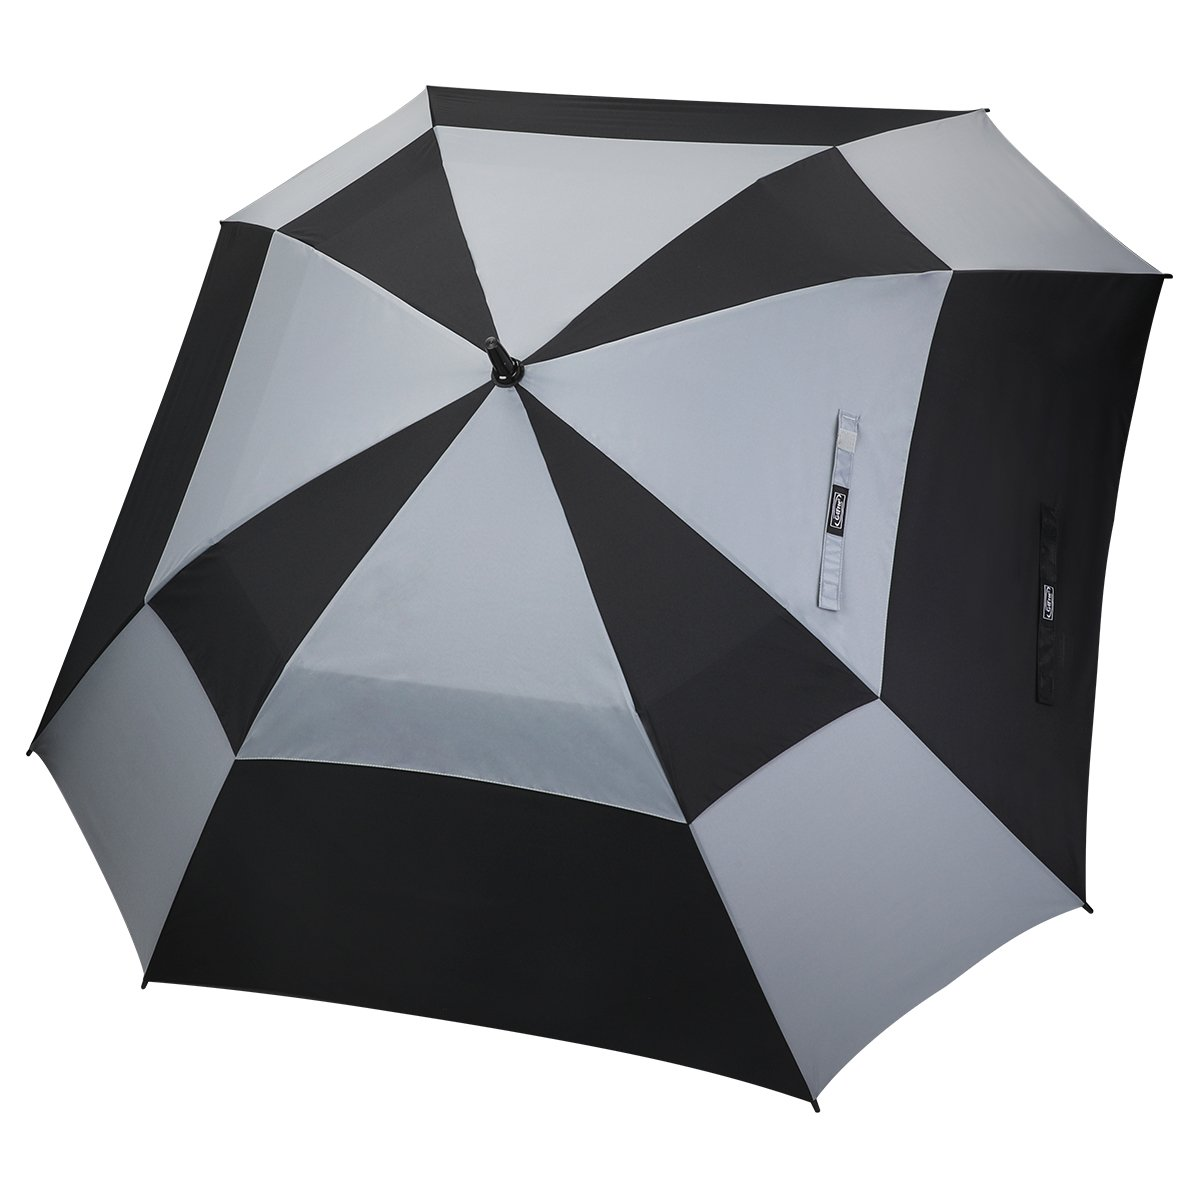 G4Free Extra Large Square Golf Umbrella 62 Inch Oversize Double Canopy Vented Umbrella Windproof Automatic Open Stick Umbrellas for Men Women by G4Free